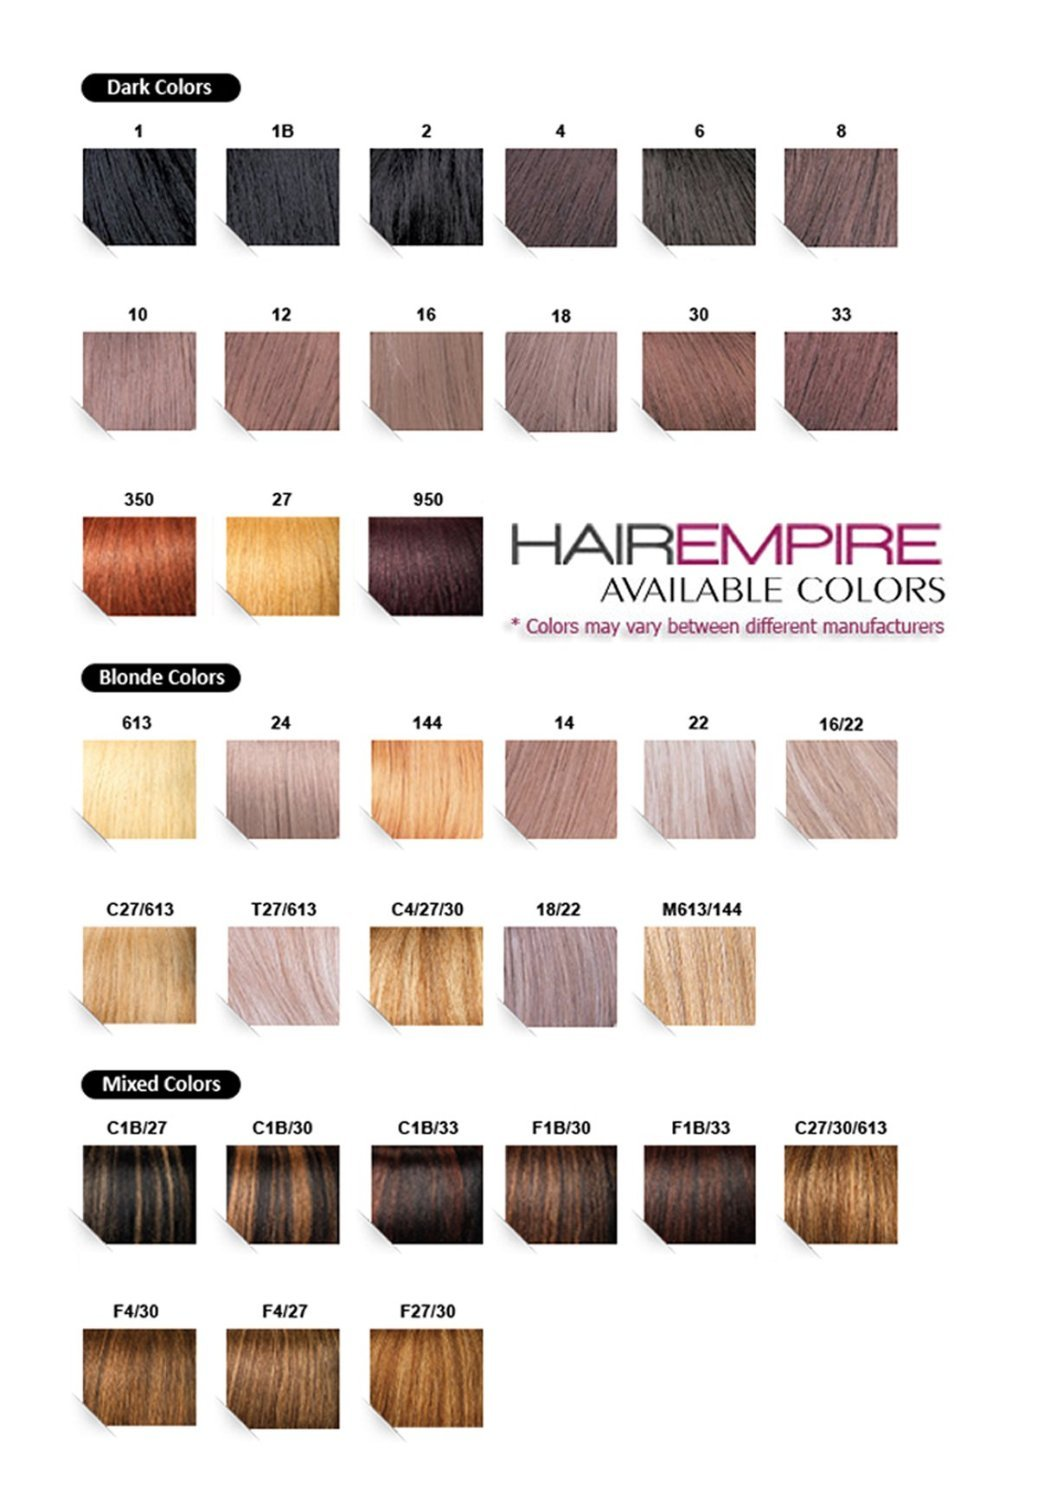 Amazon hair sense clip in extensions 22 100 human hair 4 amazon hair sense clip in extensions 22 100 human hair 427 medium dark brownstrawberry blonde 7 pieces single pack beauty nvjuhfo Choice Image